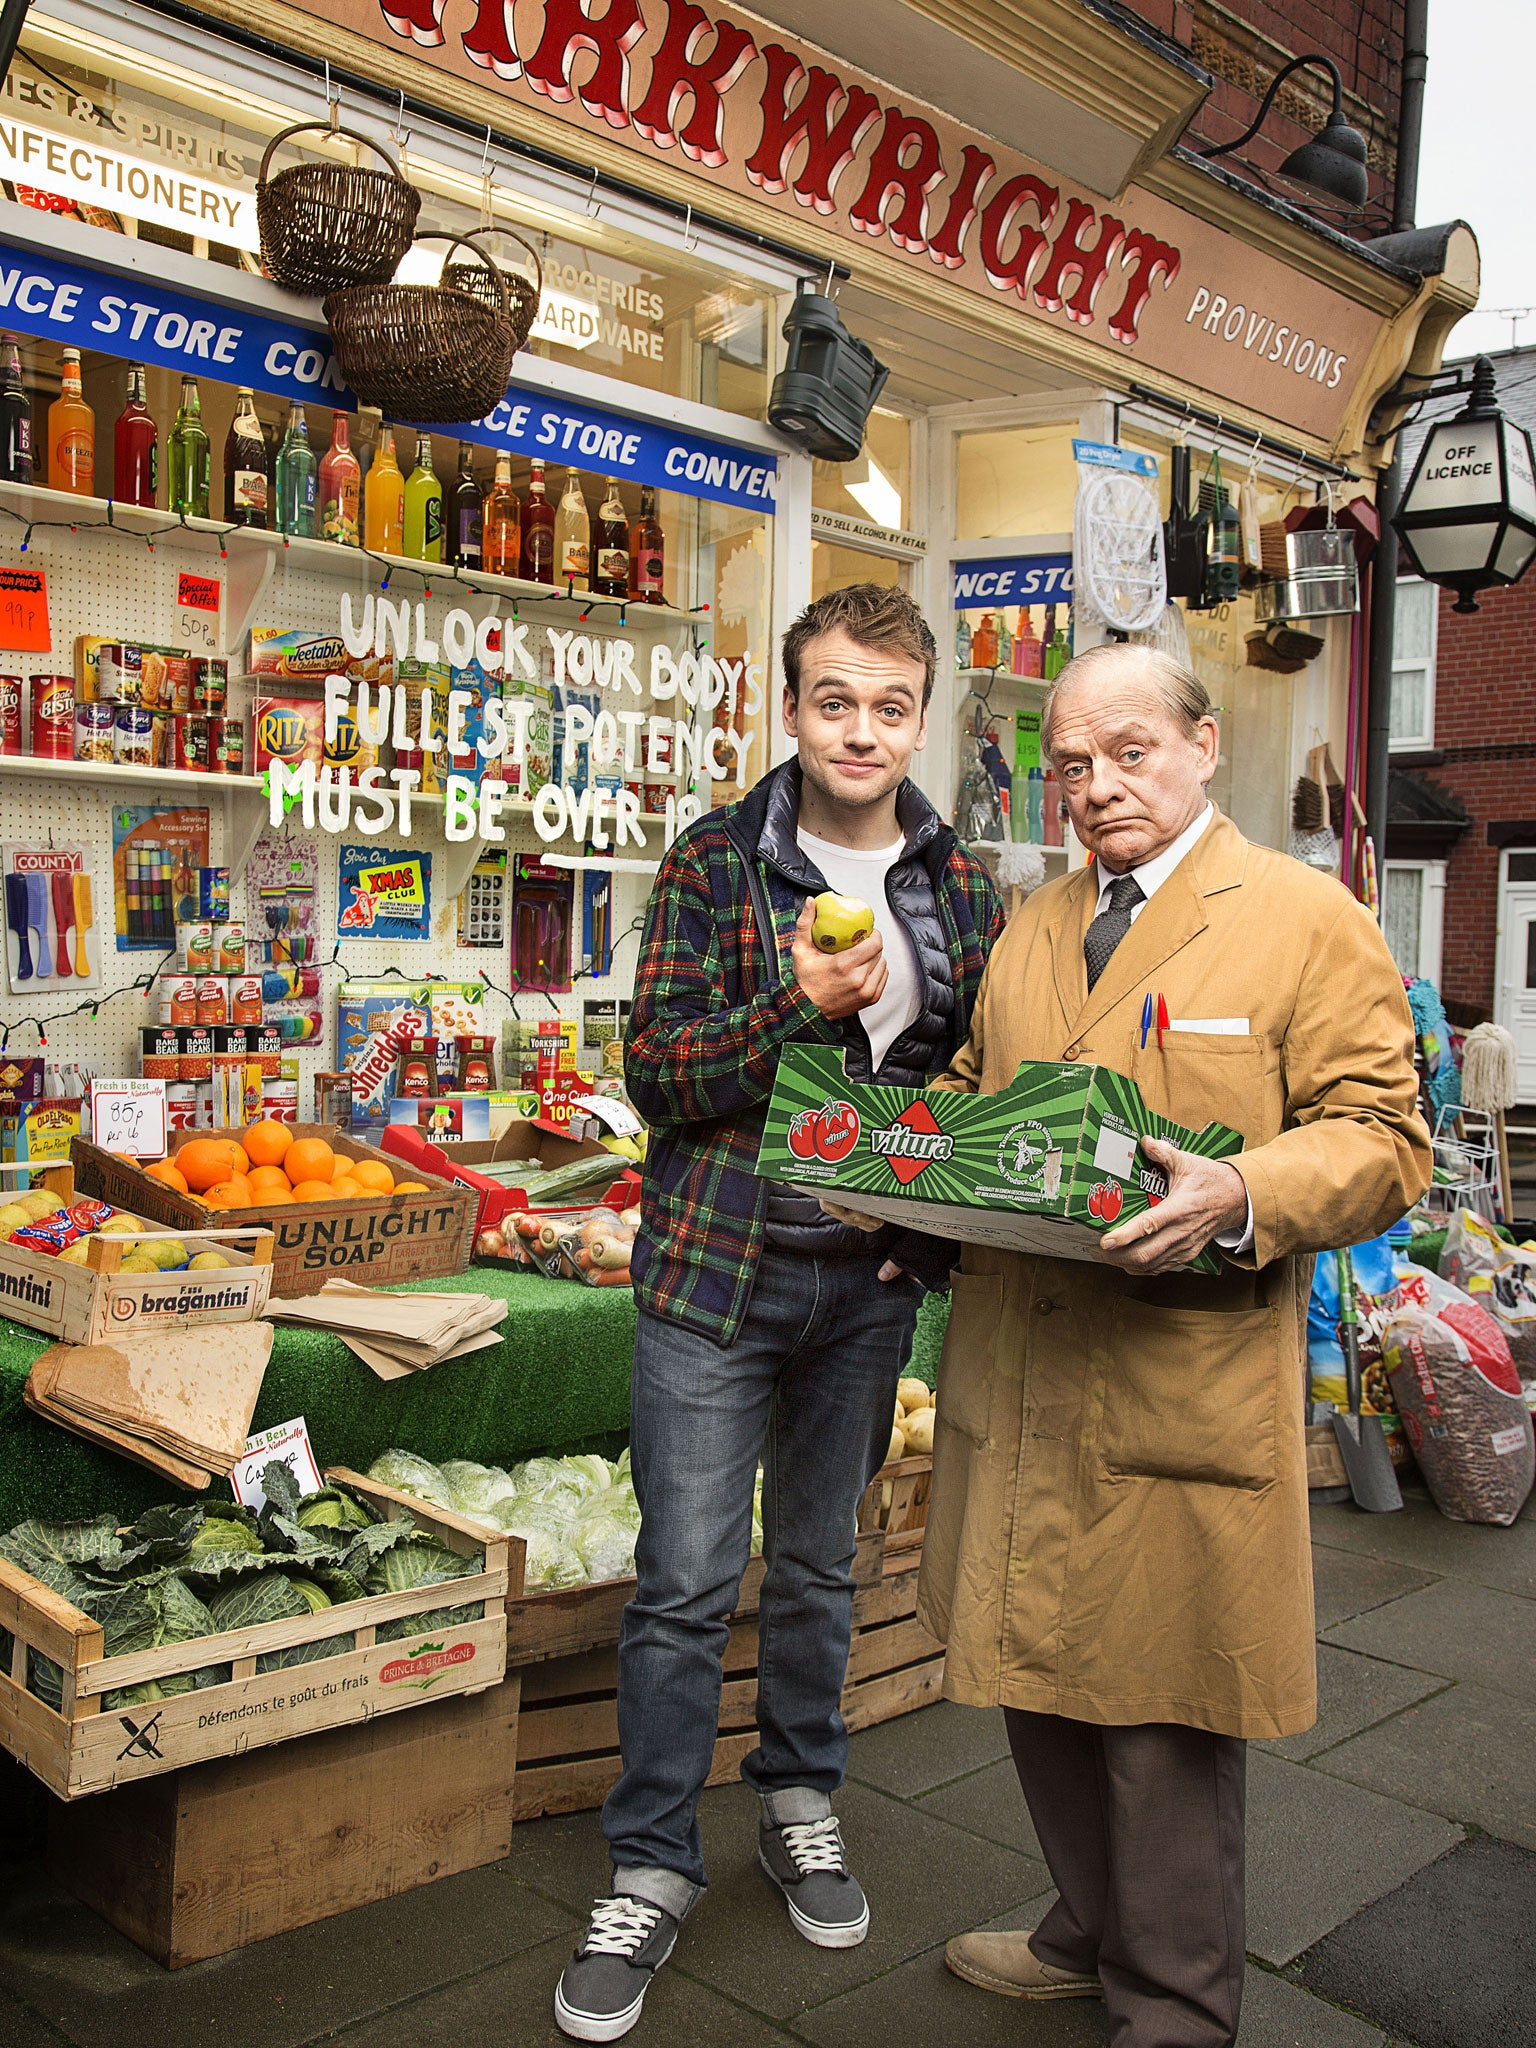 still open all hours review  it was a w